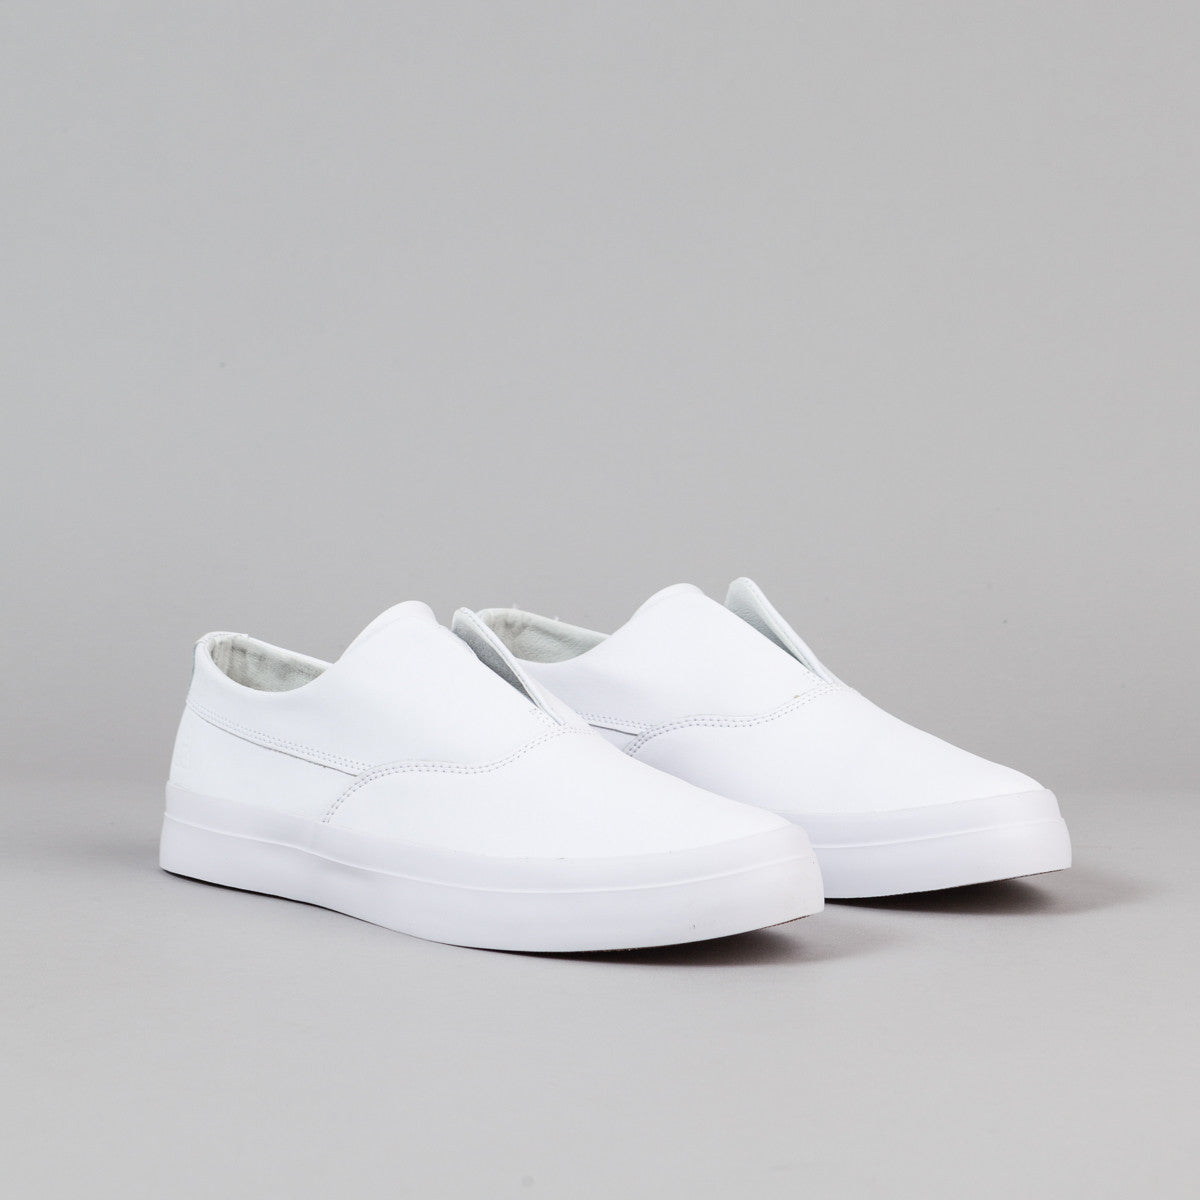 HUF Dylan Slip On SP16 Shoes - White